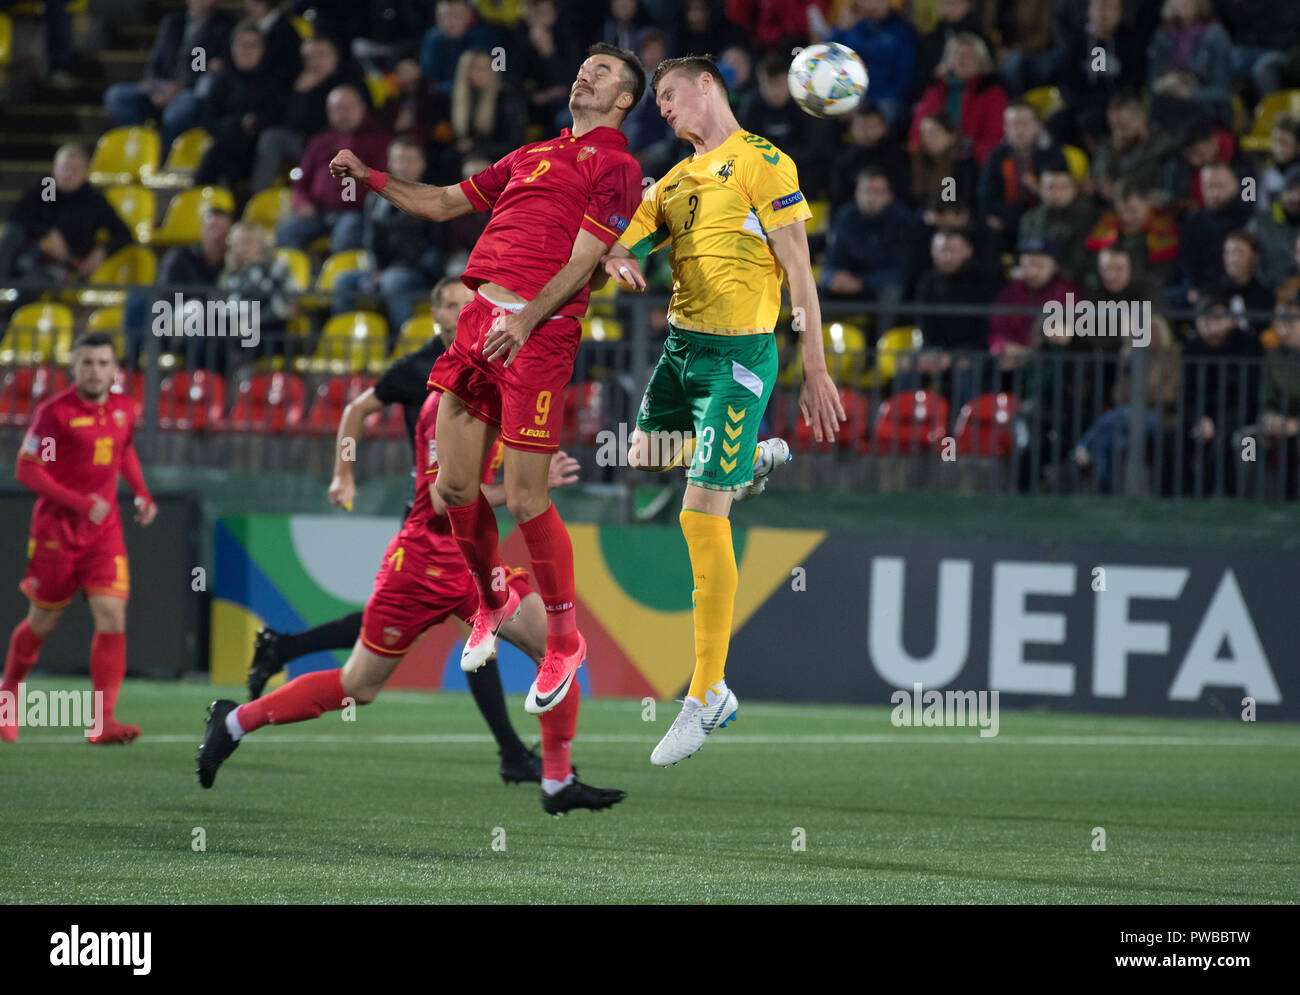 Vilnius, Lithuania. 14th Oct, 2018. Stefan Mugosa (L) of Montenegro vies with Justinas Janusevskis of Lithuania during the UEFA Nations League C match at LFF Stadium in Vilnius, Lithuania, on Oct. 14, 2018. Montenegro won 4-1. Credit: Alfredas Pliadis/Xinhua/Alamy Live News - Stock Image